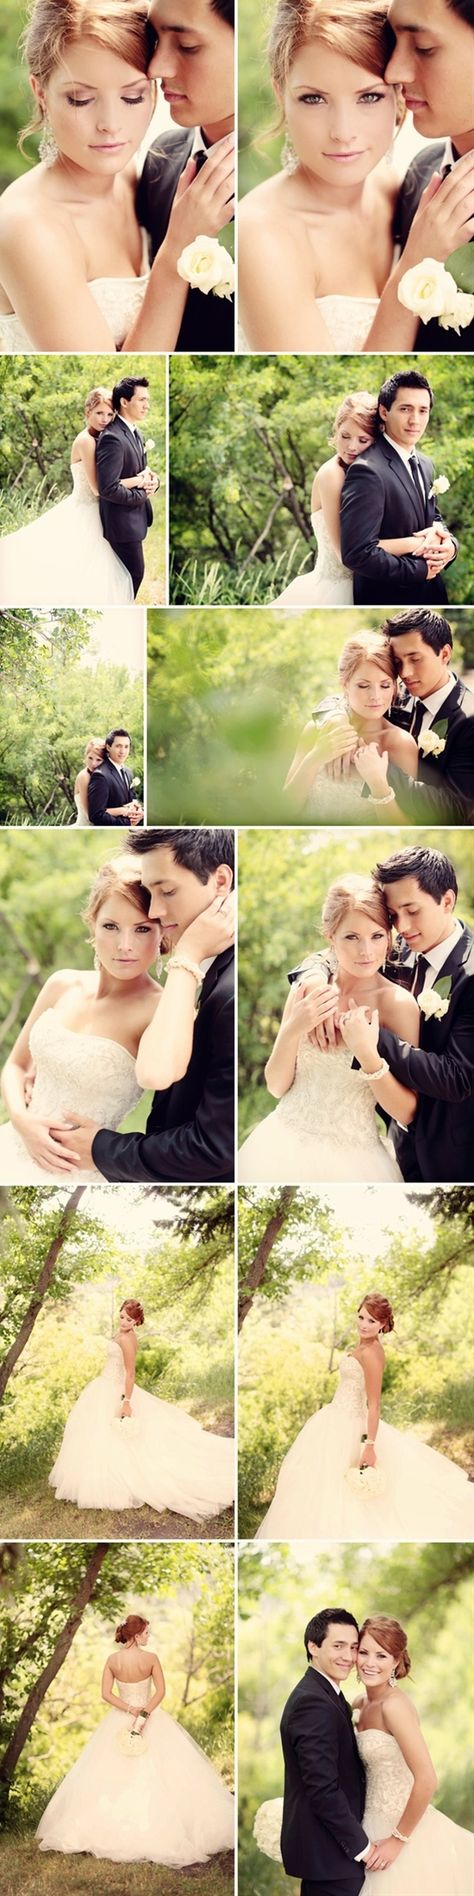 Think about the look you want for your wedding photo's. If you want lush beautiful greenery like in these pics, tell your photographer & so they can scope out locations before your wedding day.